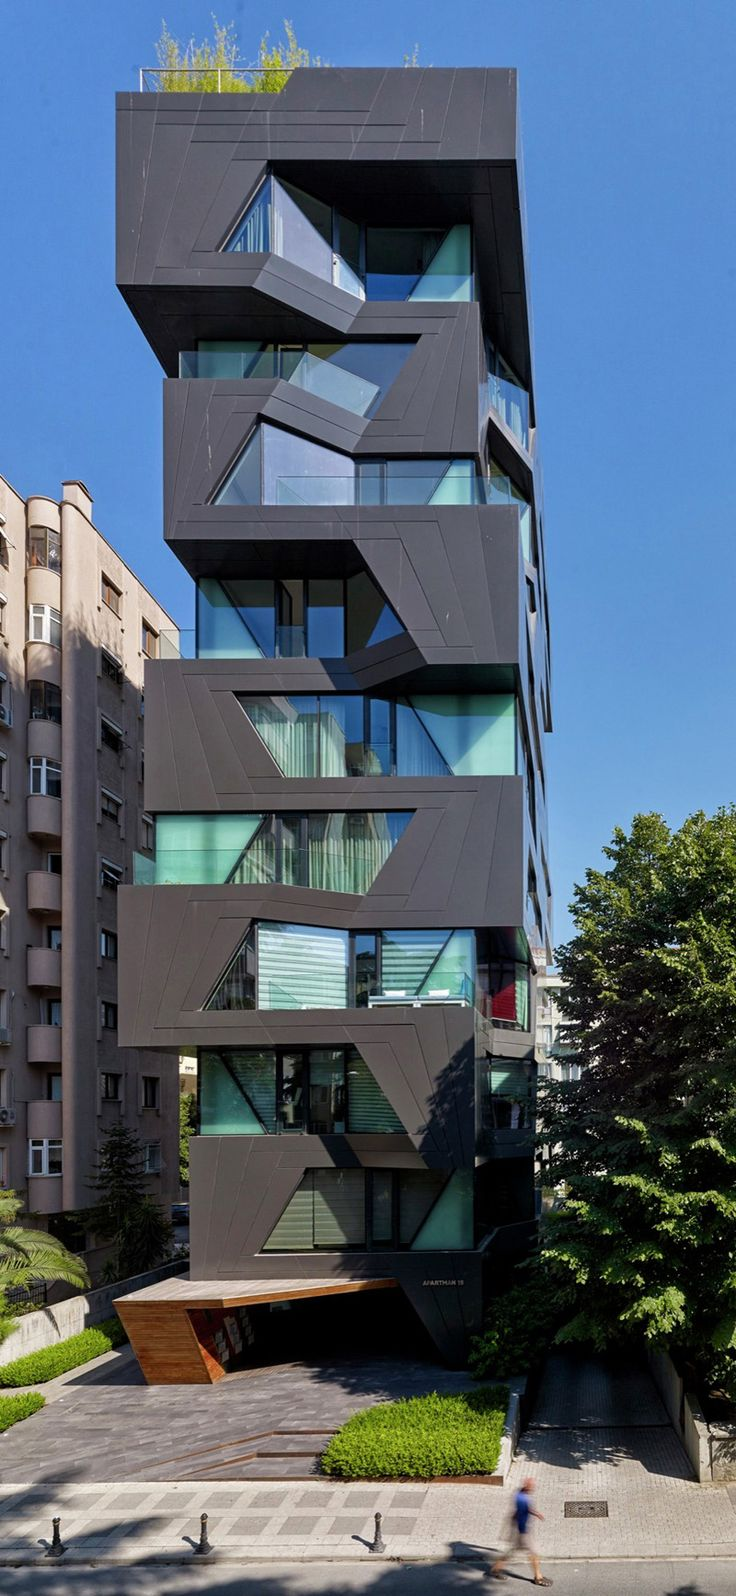 Cool Apartment Buildings 434 best apartment buildings images on pinterest | architecture